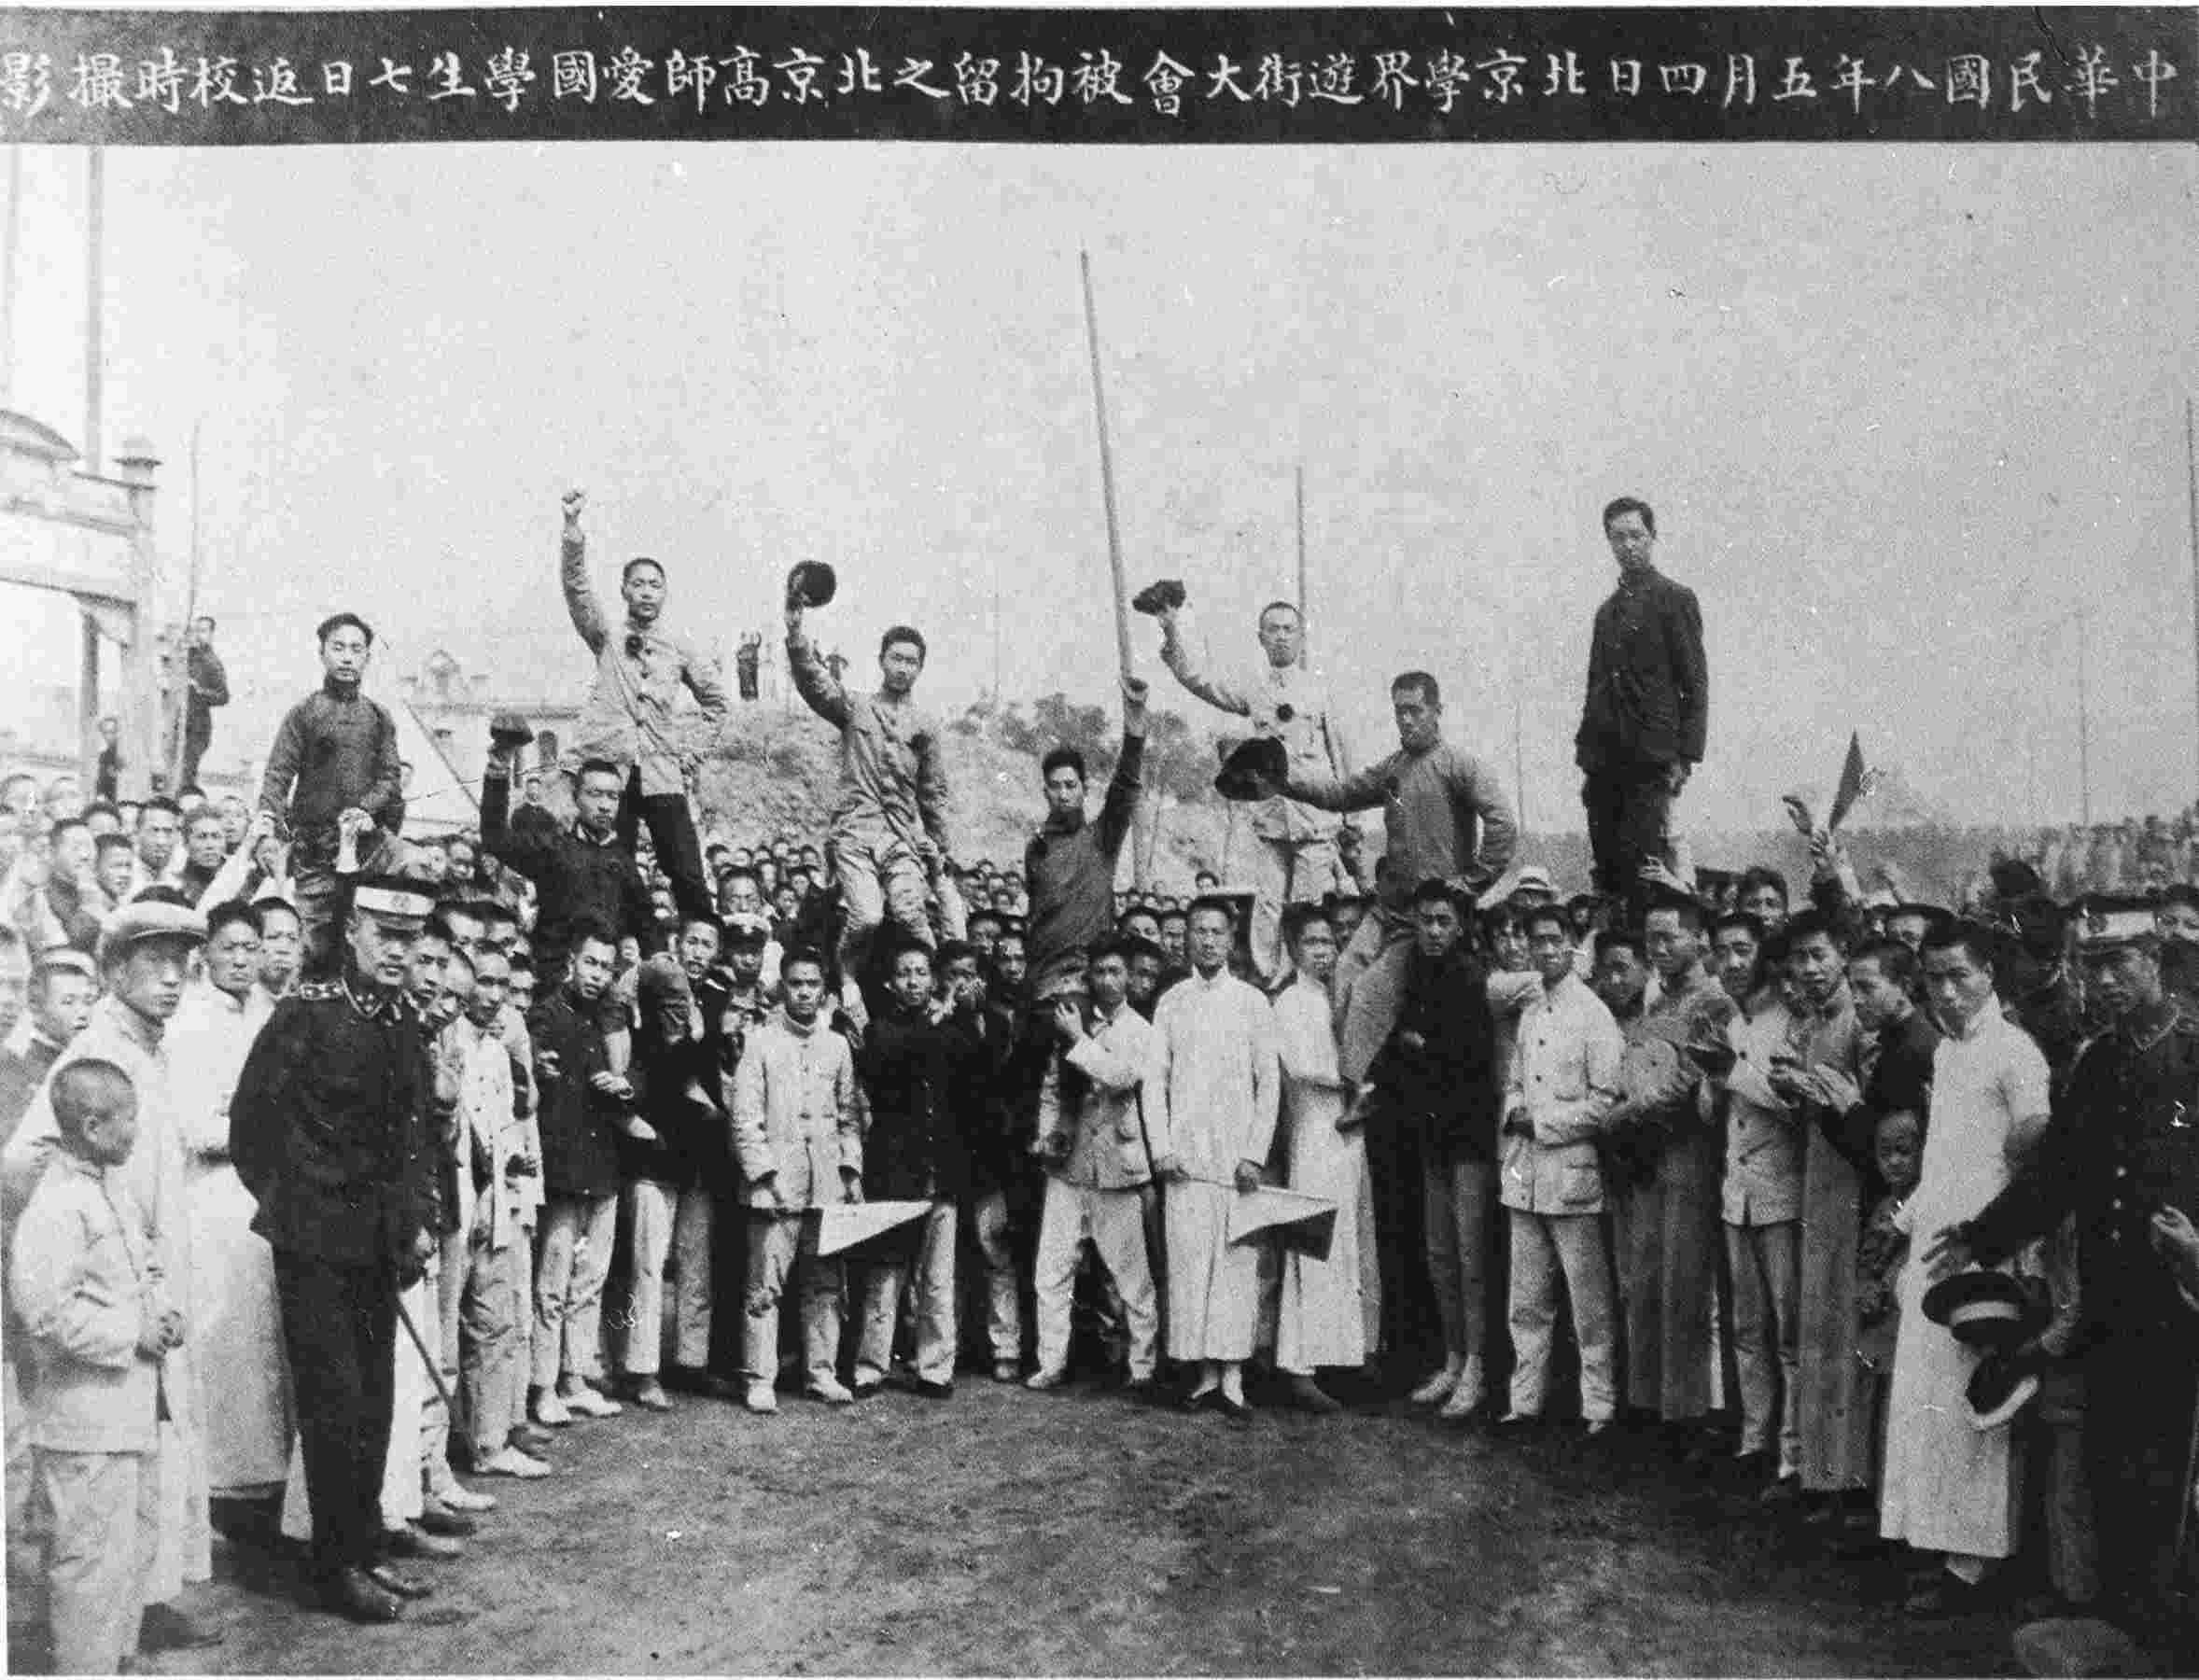 https://upload.wikimedia.org/wikipedia/commons/1/1c/May_Fourth_Movement_students.jpg